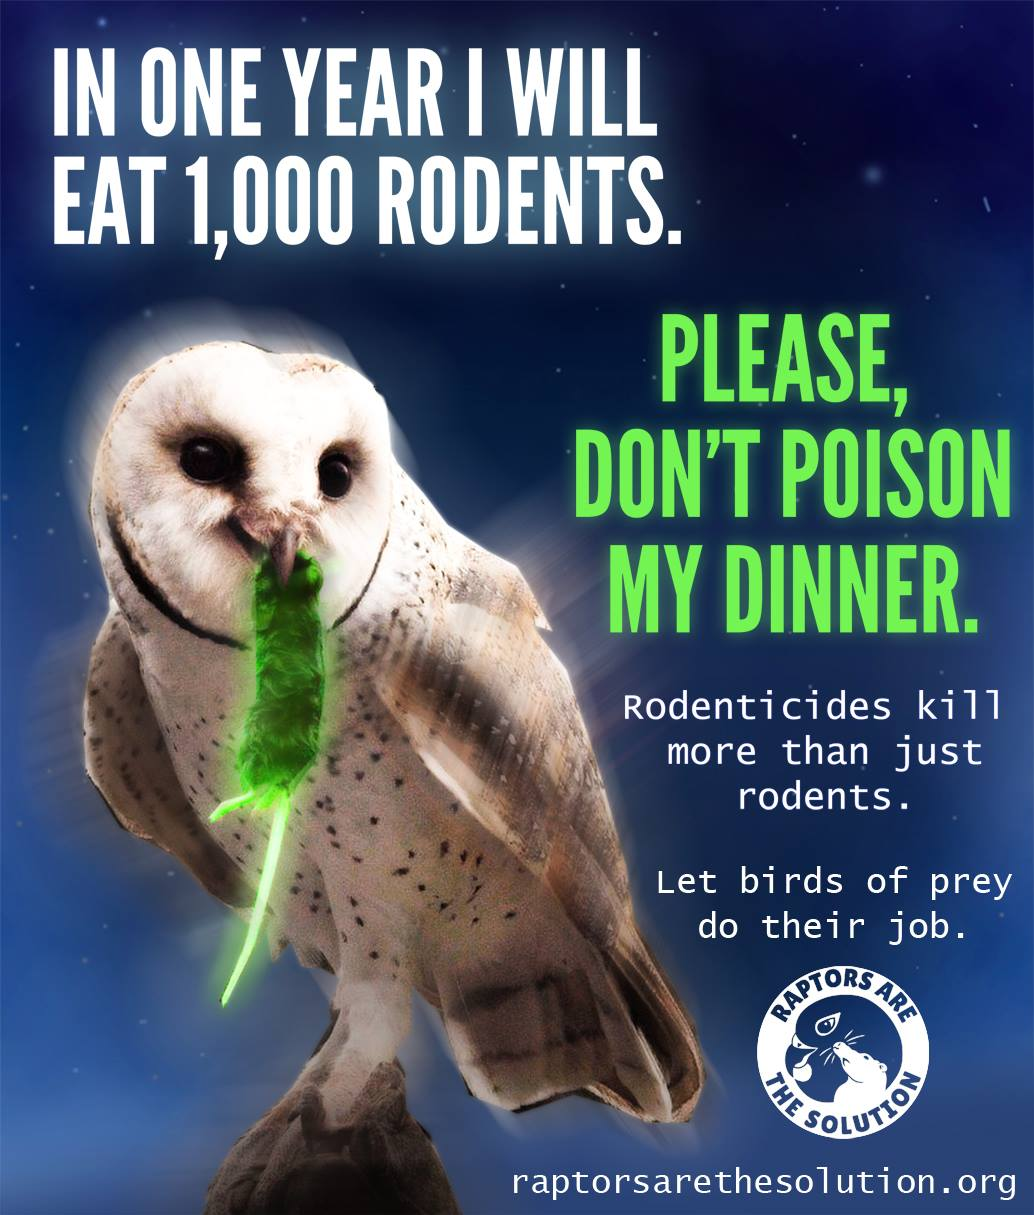 Don't poison my dinner